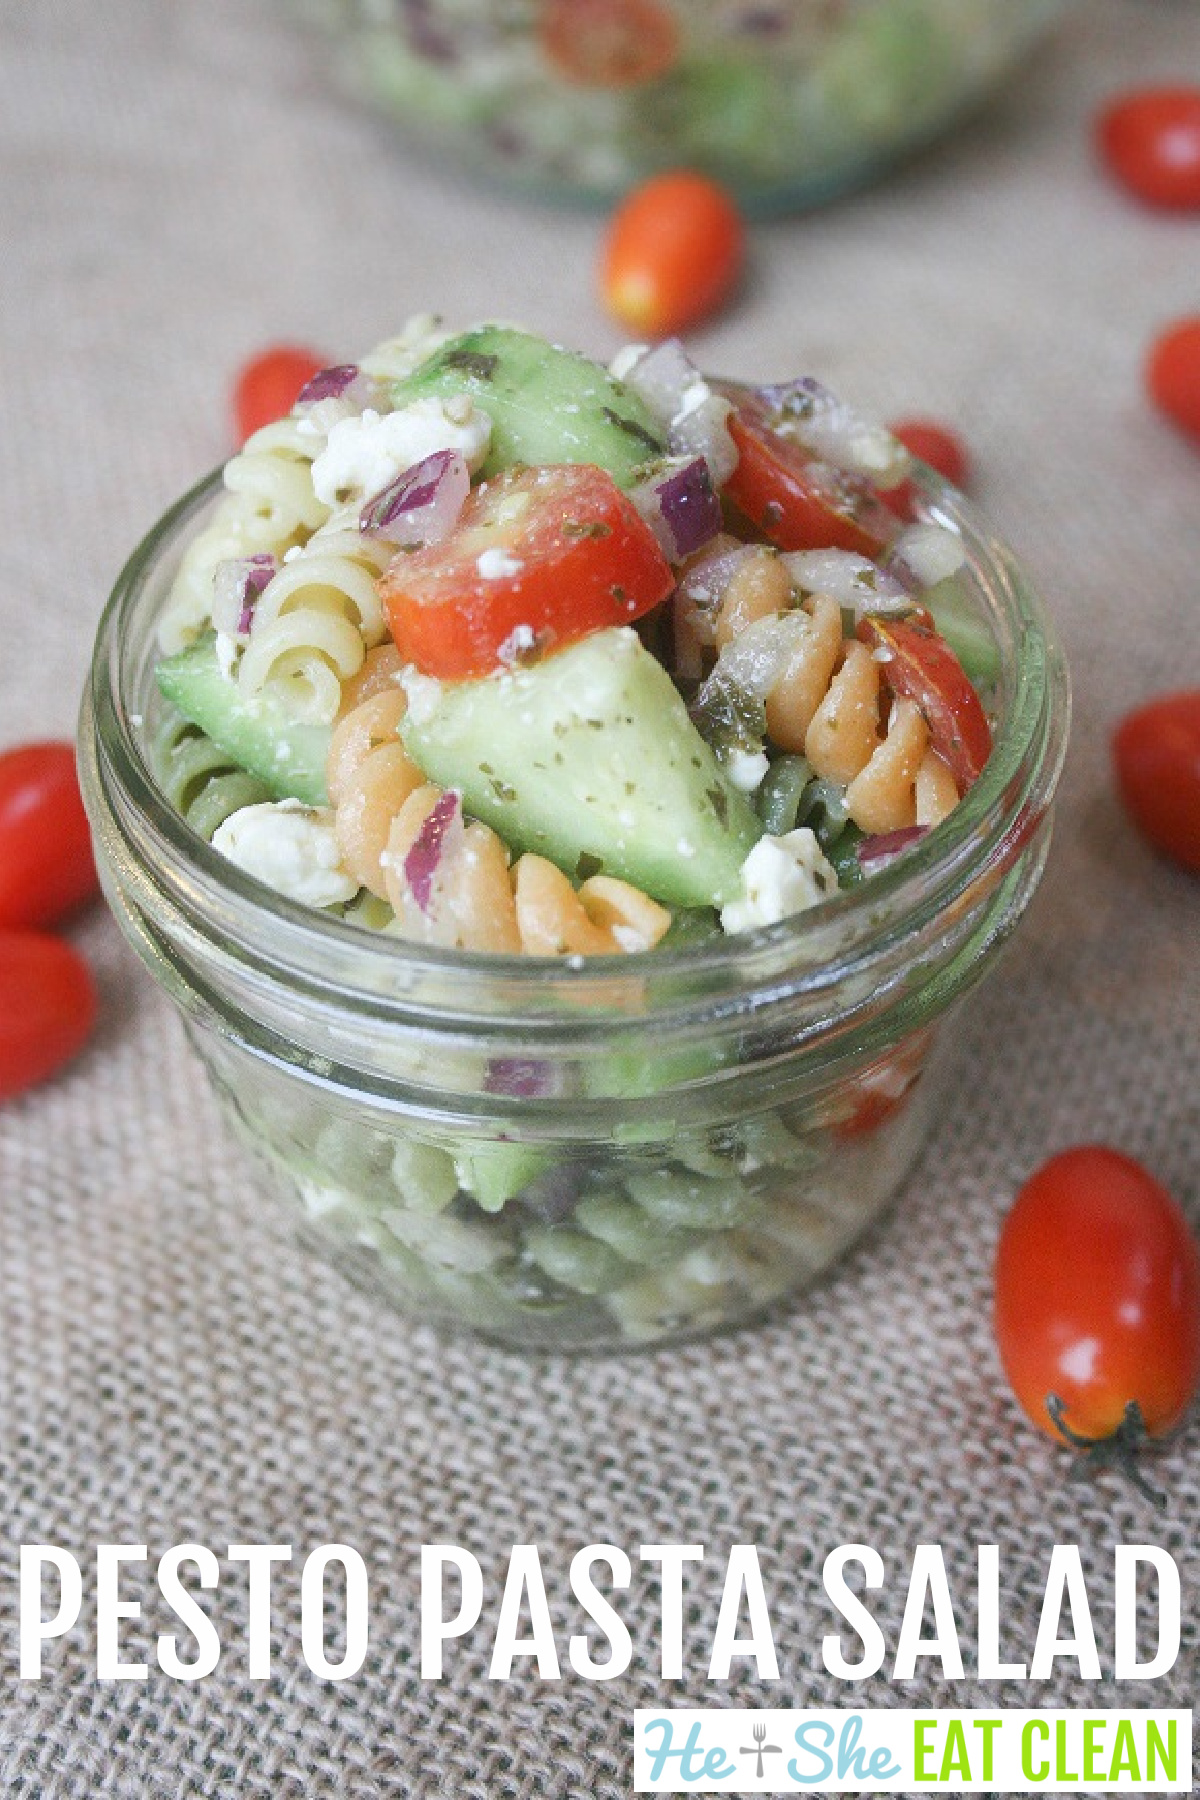 clear mason jar of pasta salad consisting of pasta, cucumbers, tomatoes, red onion, and feta cheese